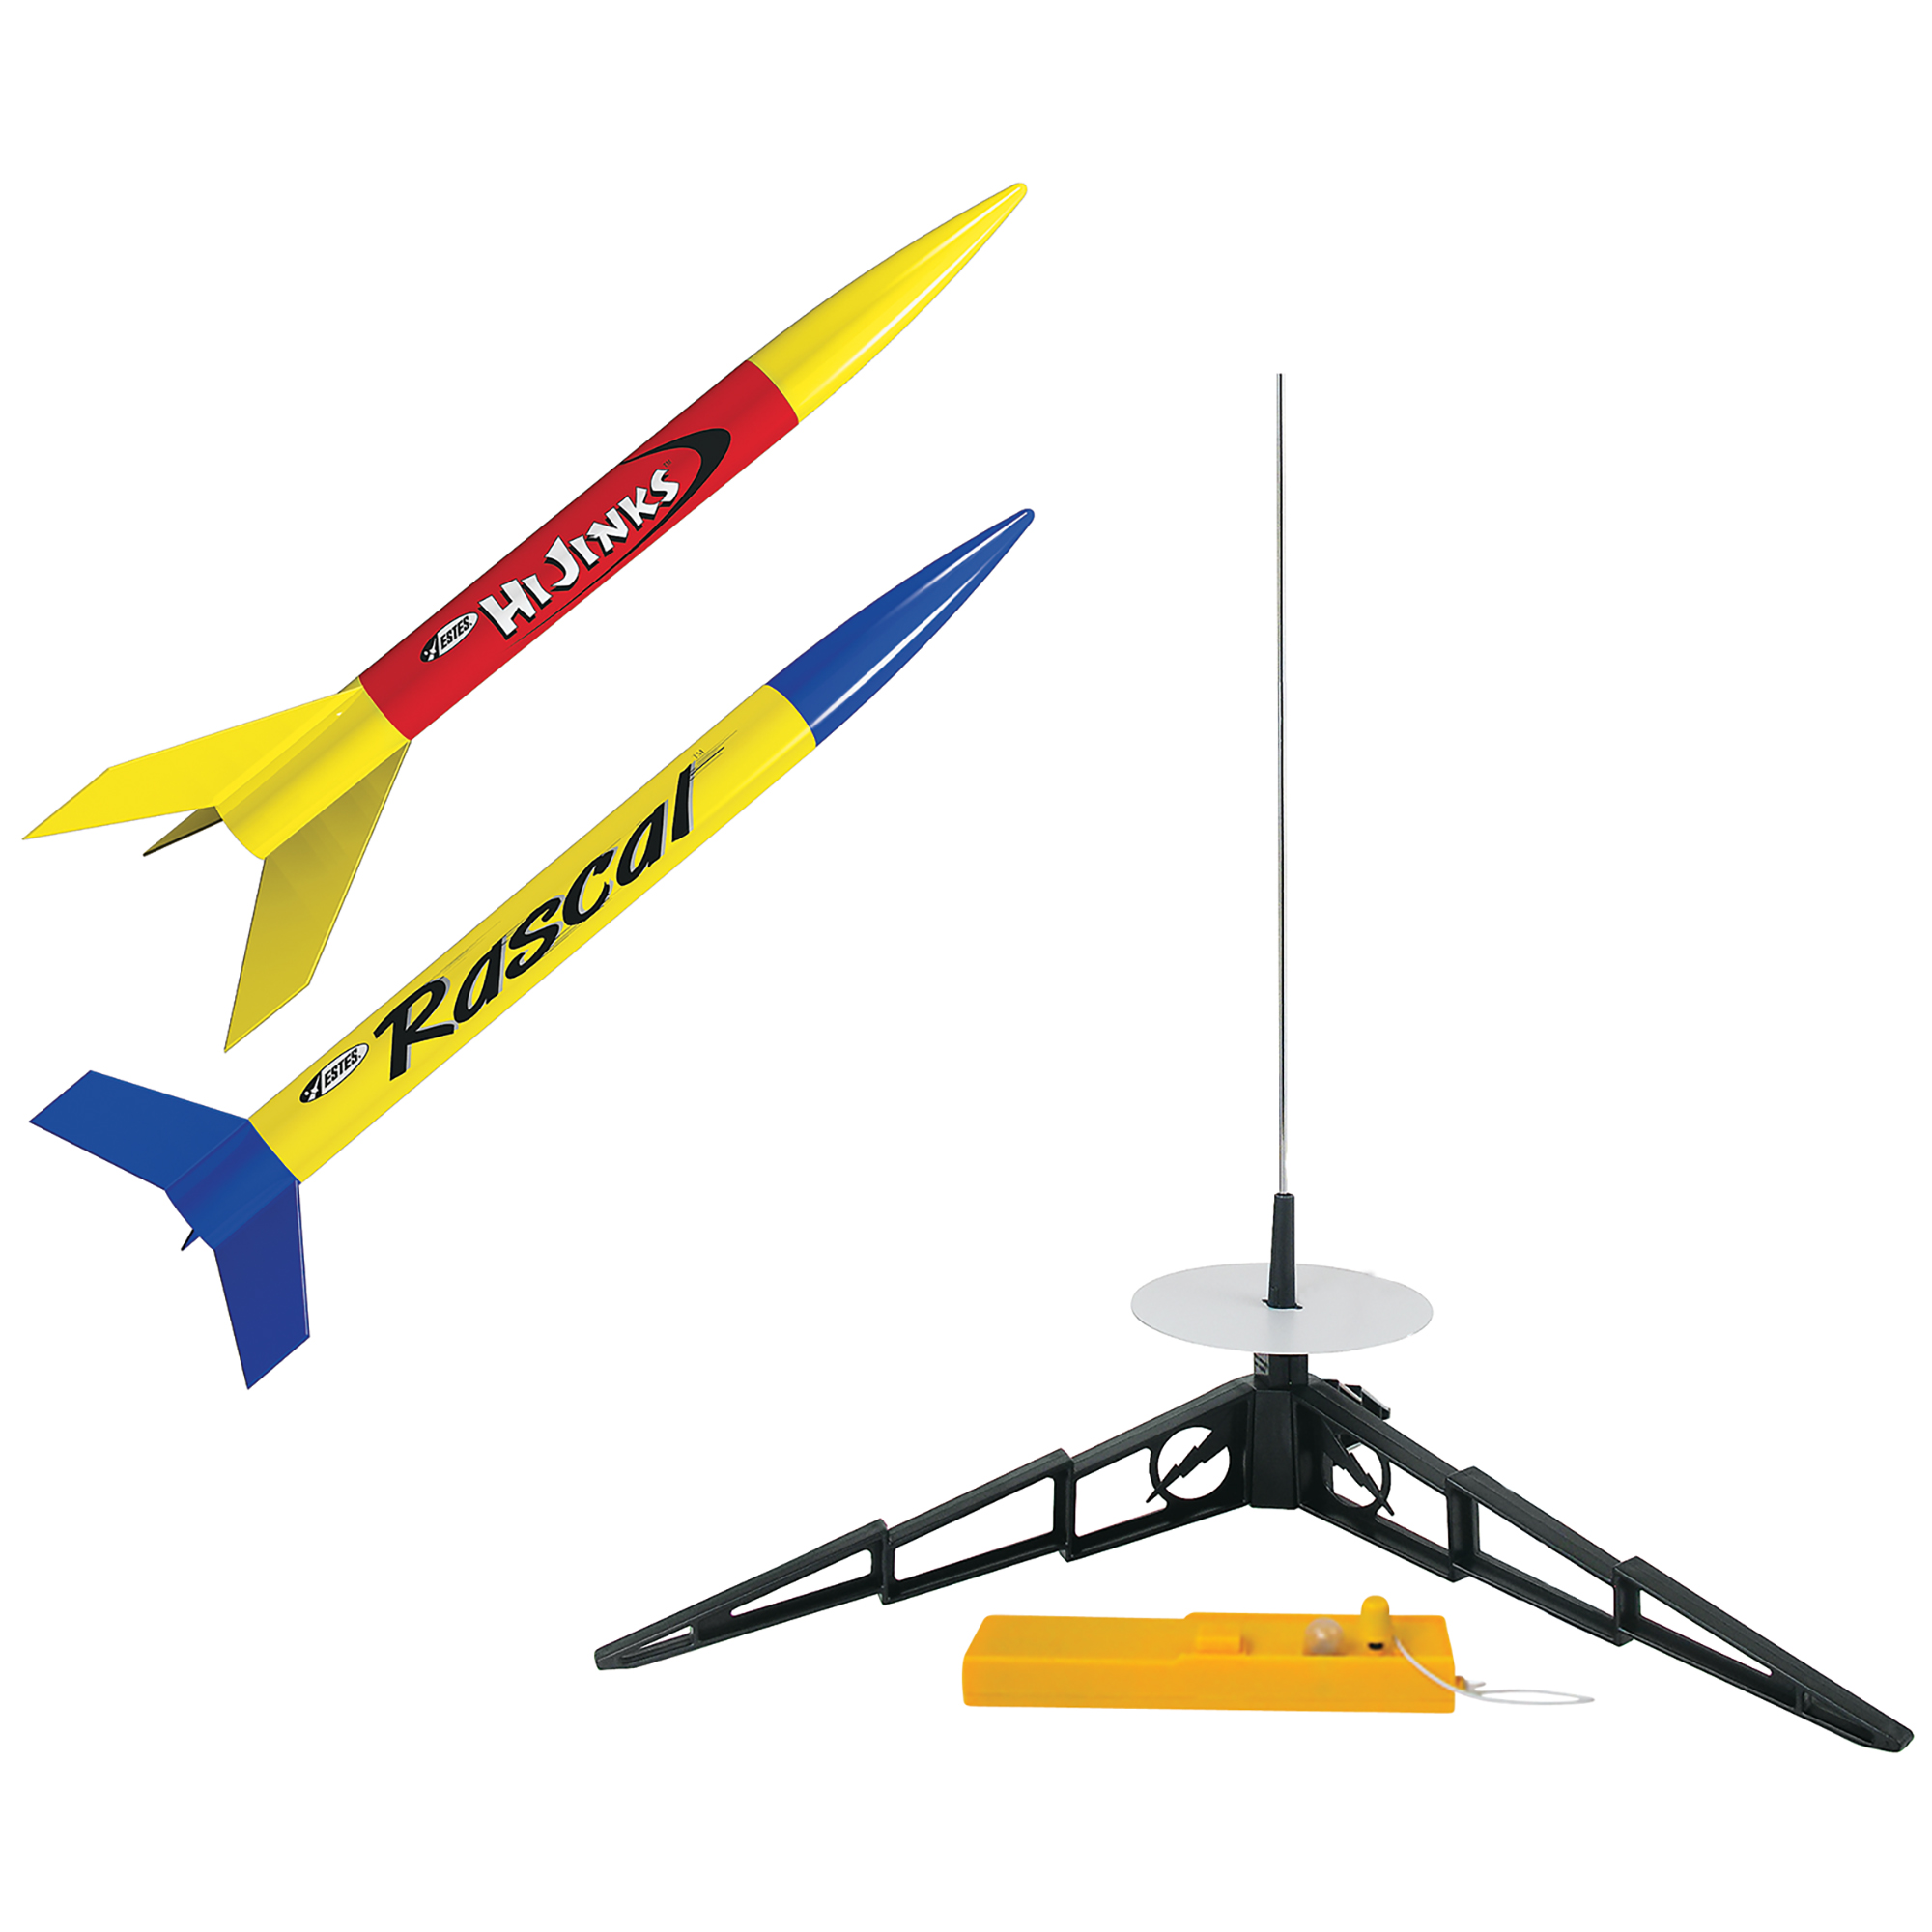 Estes Rascal HiJinks Flying Model Rocket Launch Set by Estes-Cox Corp.